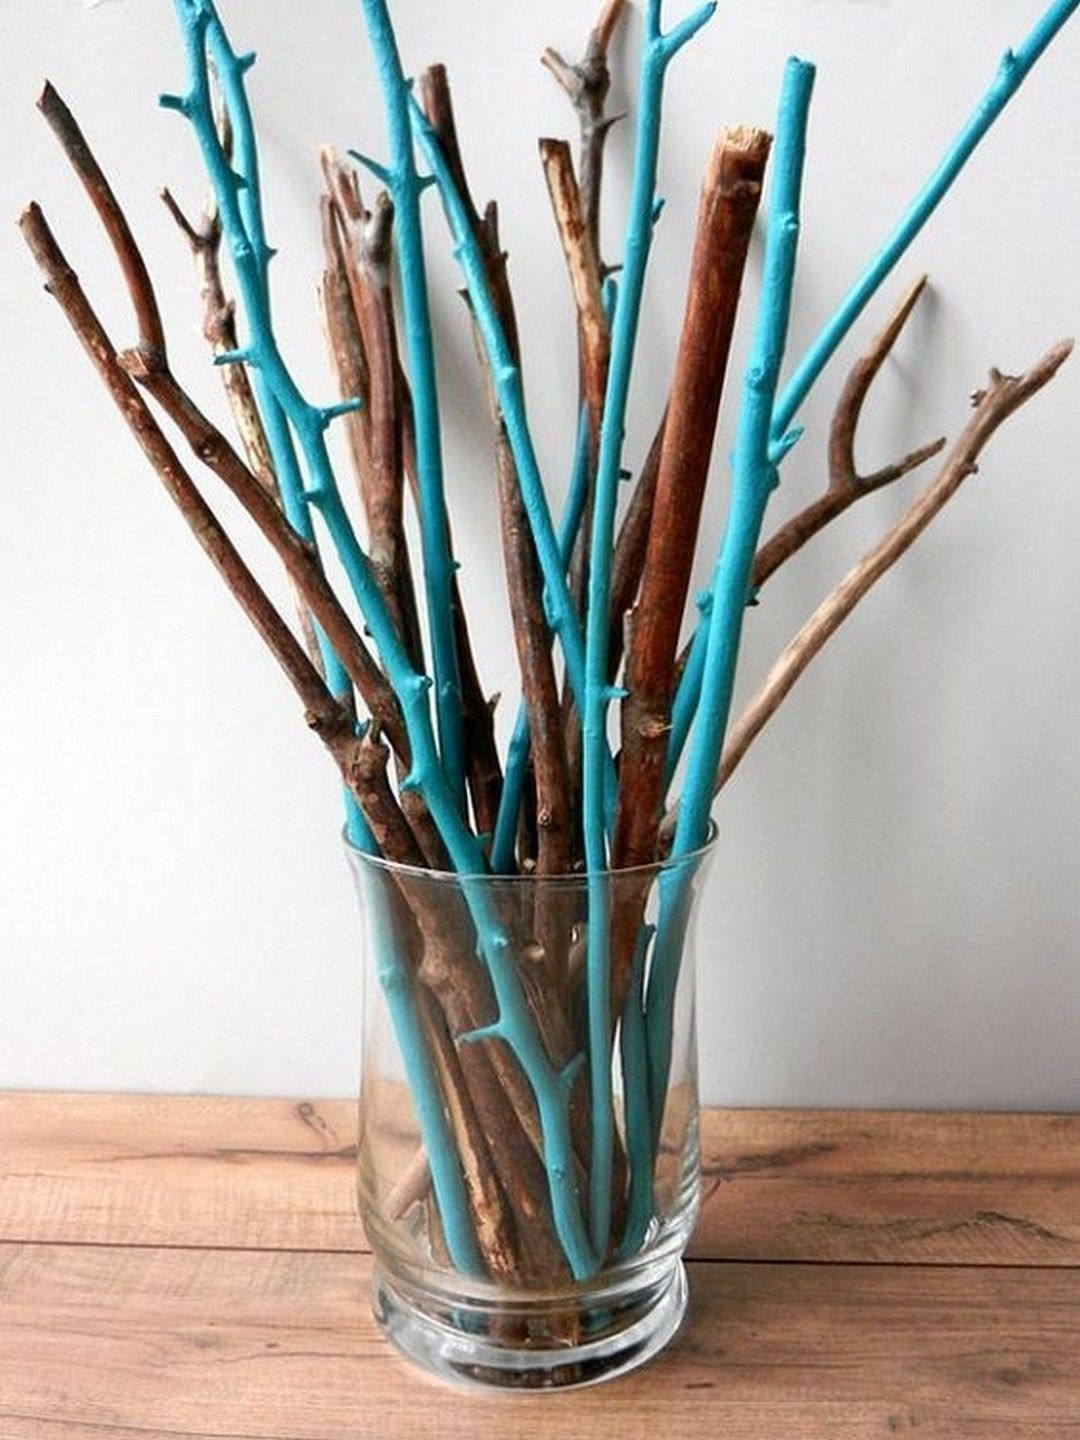 18 Here We Are With Another Diy Solution That You Will Love Handmade Home Decor Handmade Home Rustic Diy